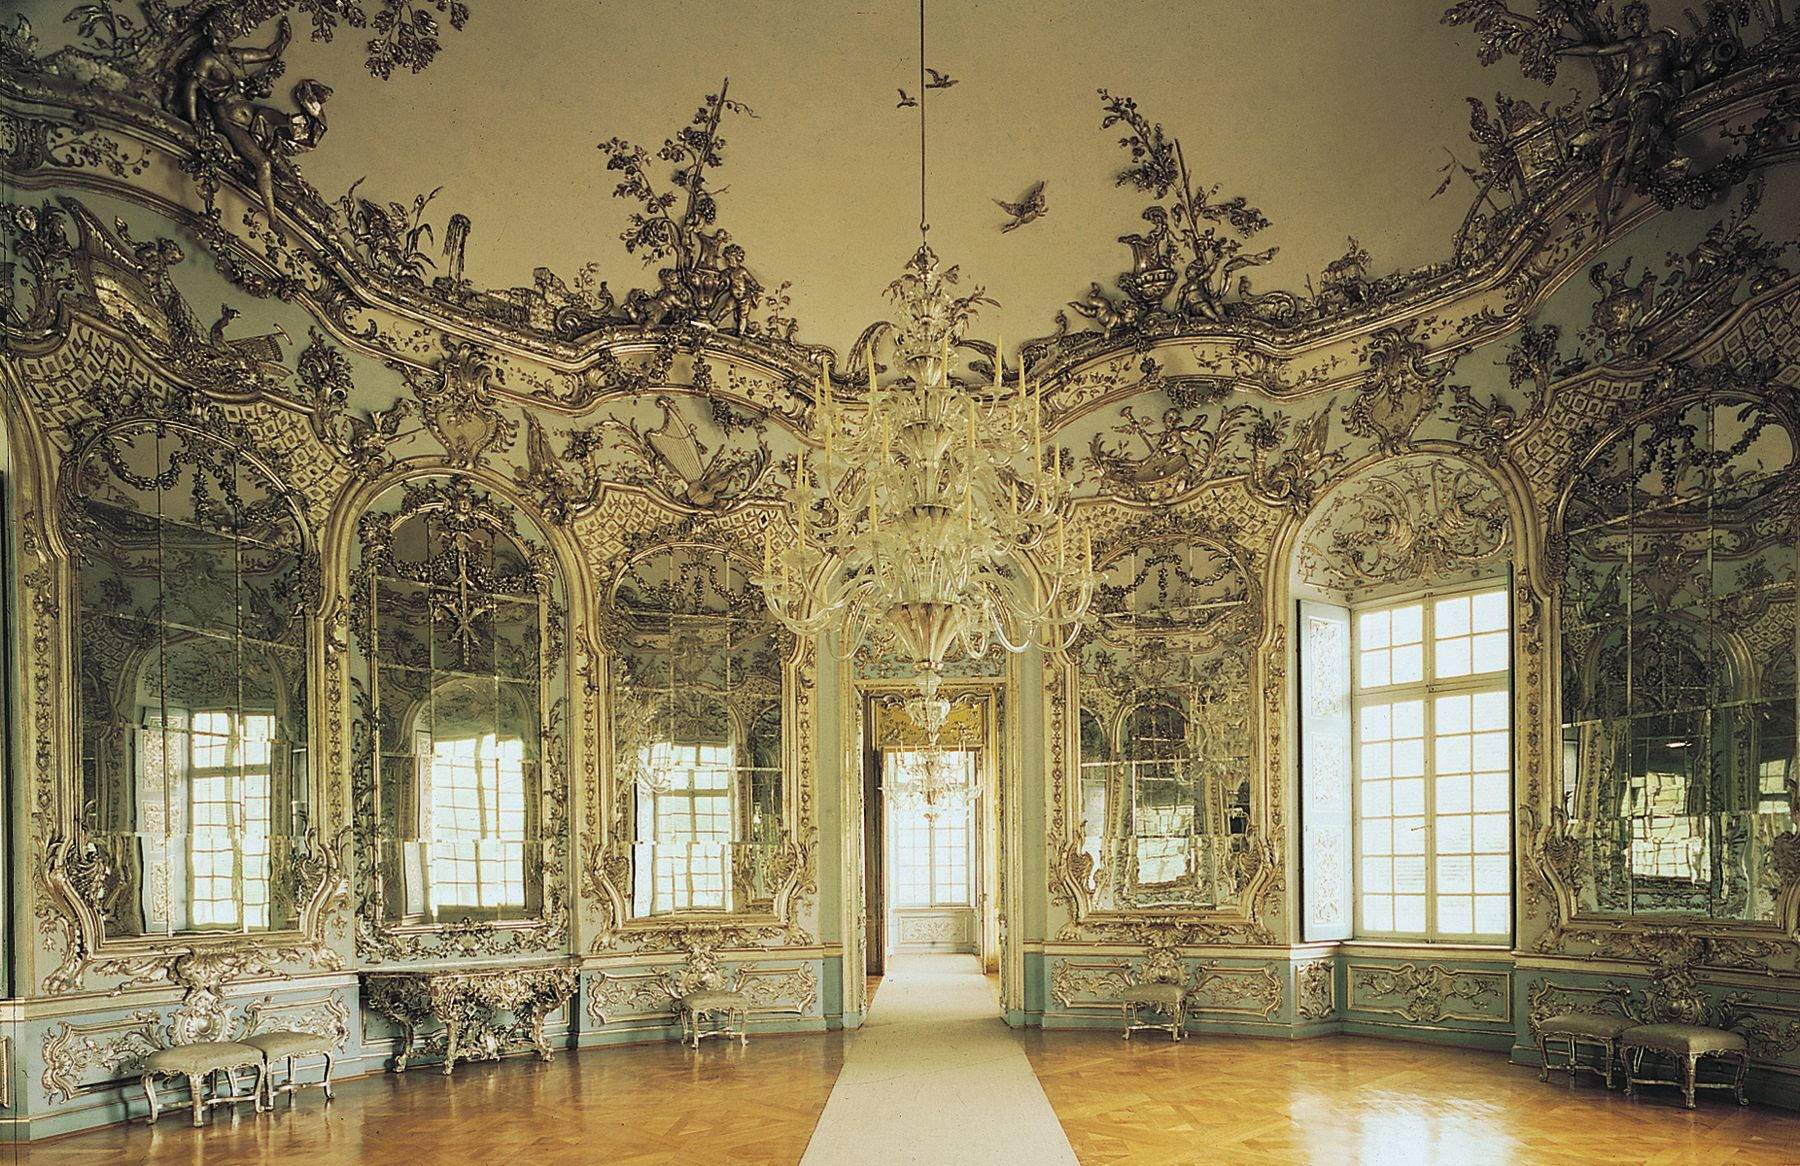 Fran ois de cuvilli s hall of mirrors the amalienburg for French baroque characteristics